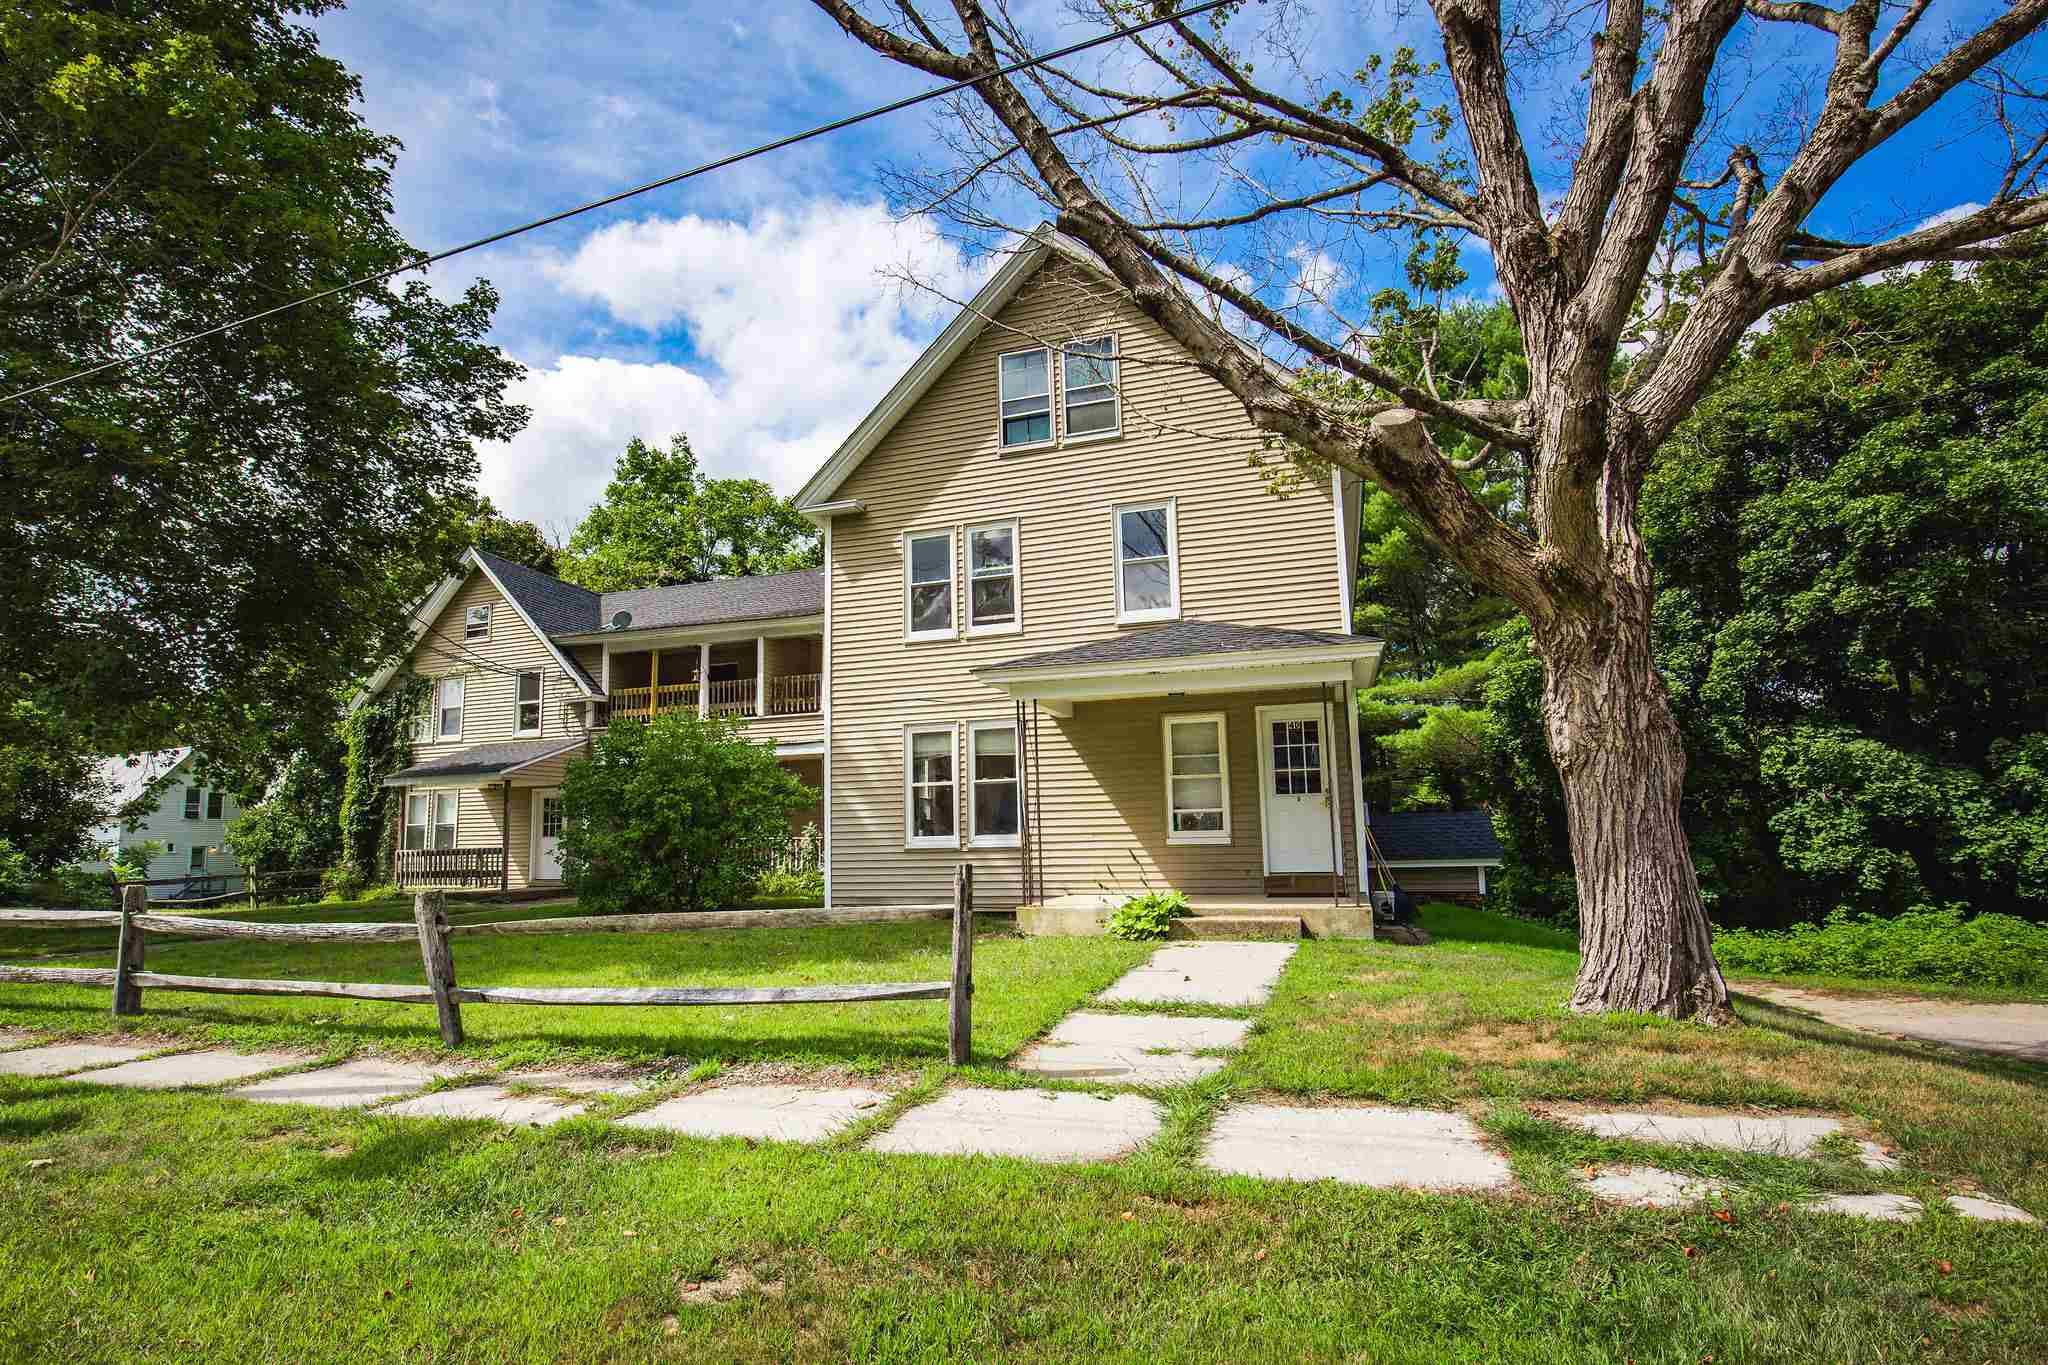 MLS 4828069: 4 Bayley Avenue, Plymouth NH